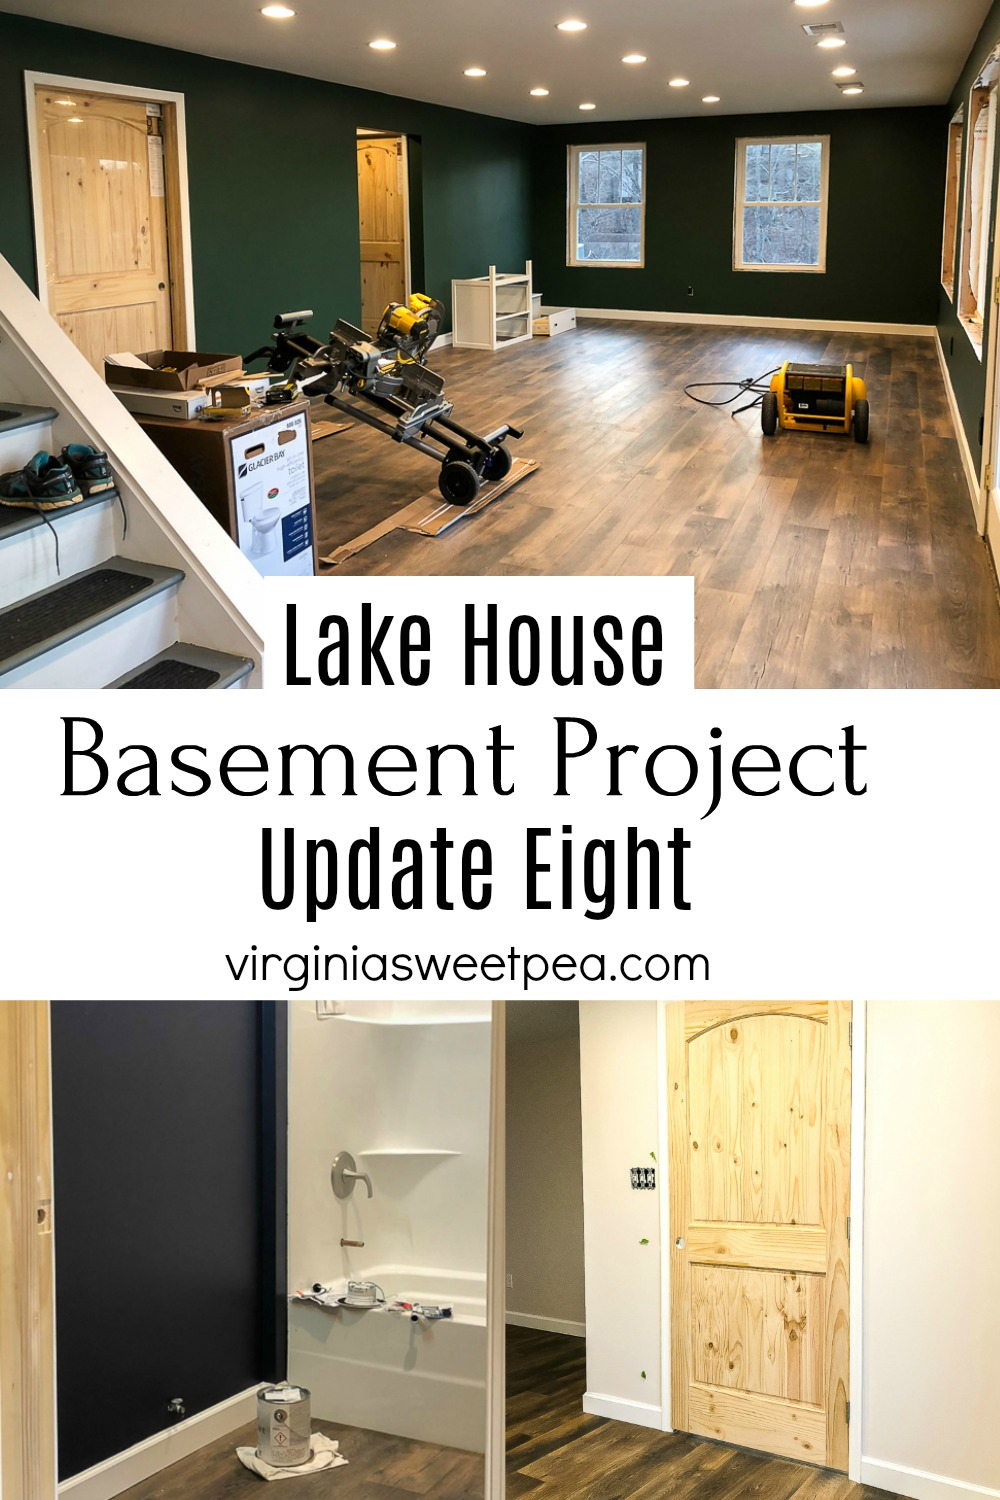 Lake House Basement Project - Work continues on the transformation of an unfinished basement into a family room, bathroom, and bedroom. #lakehousebasement #basementproject #finishingabasement